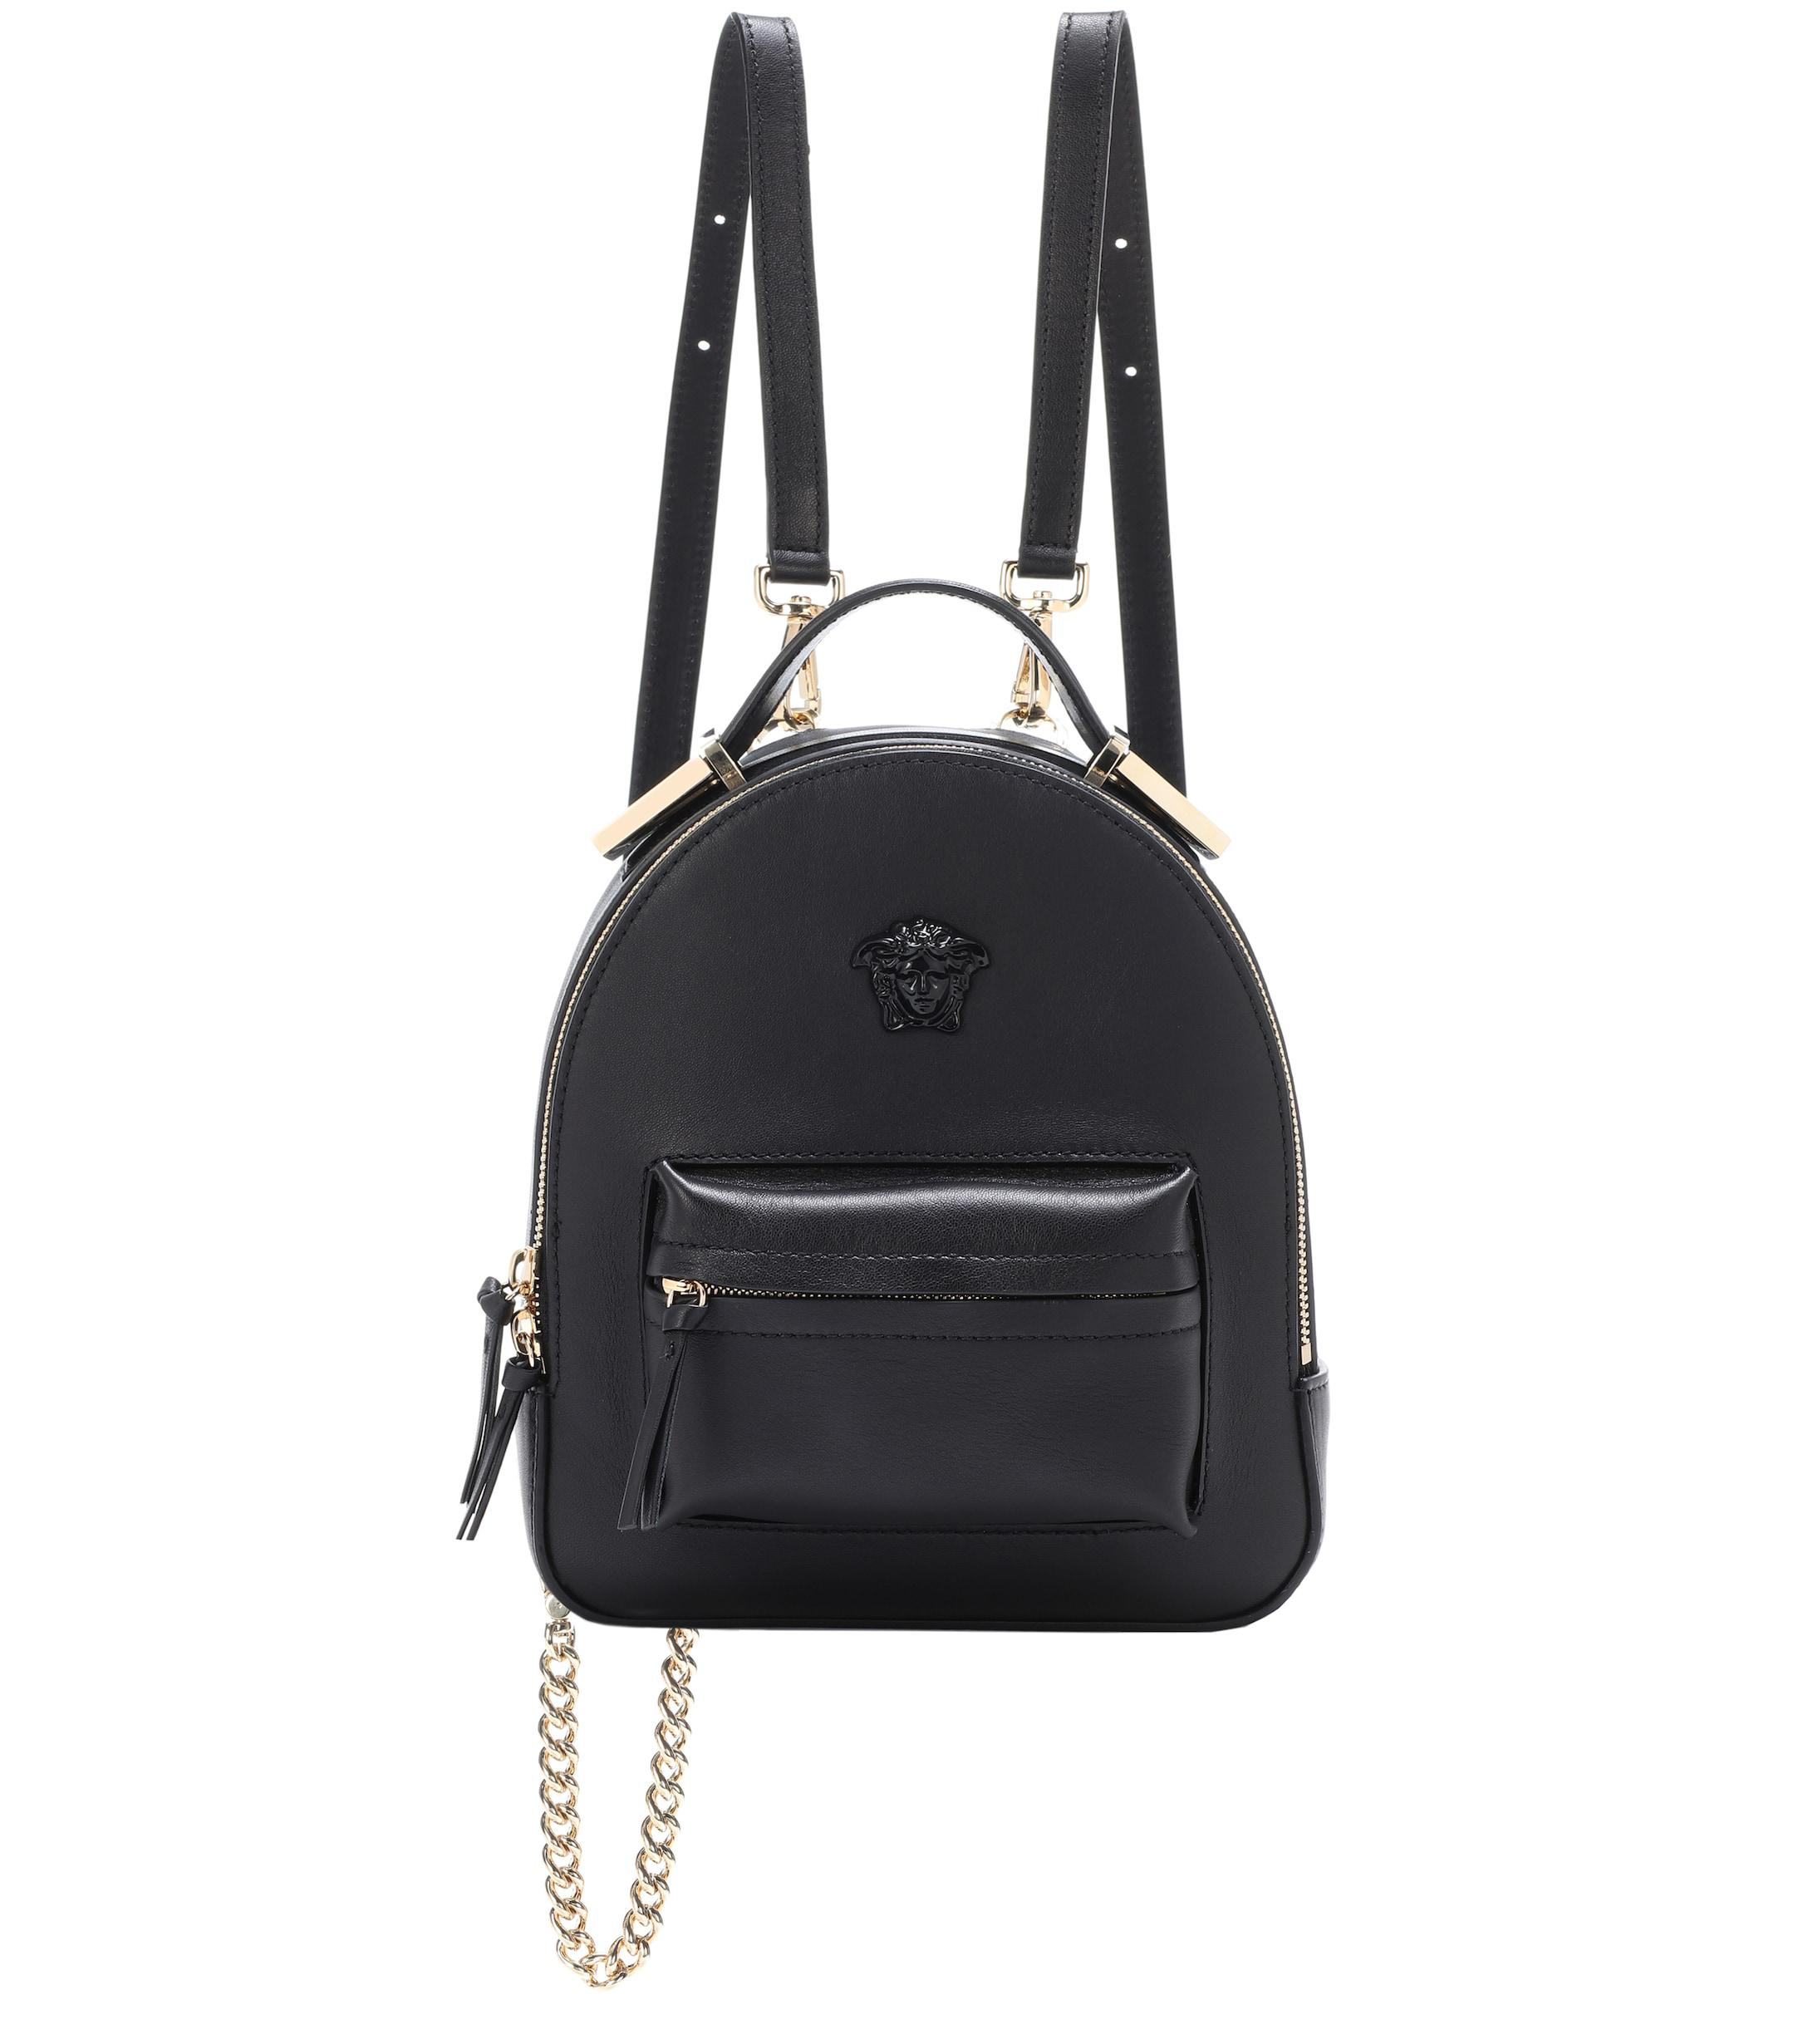 b9d783bf69 Versace Palazzo Leather Backpack in Black - Lyst